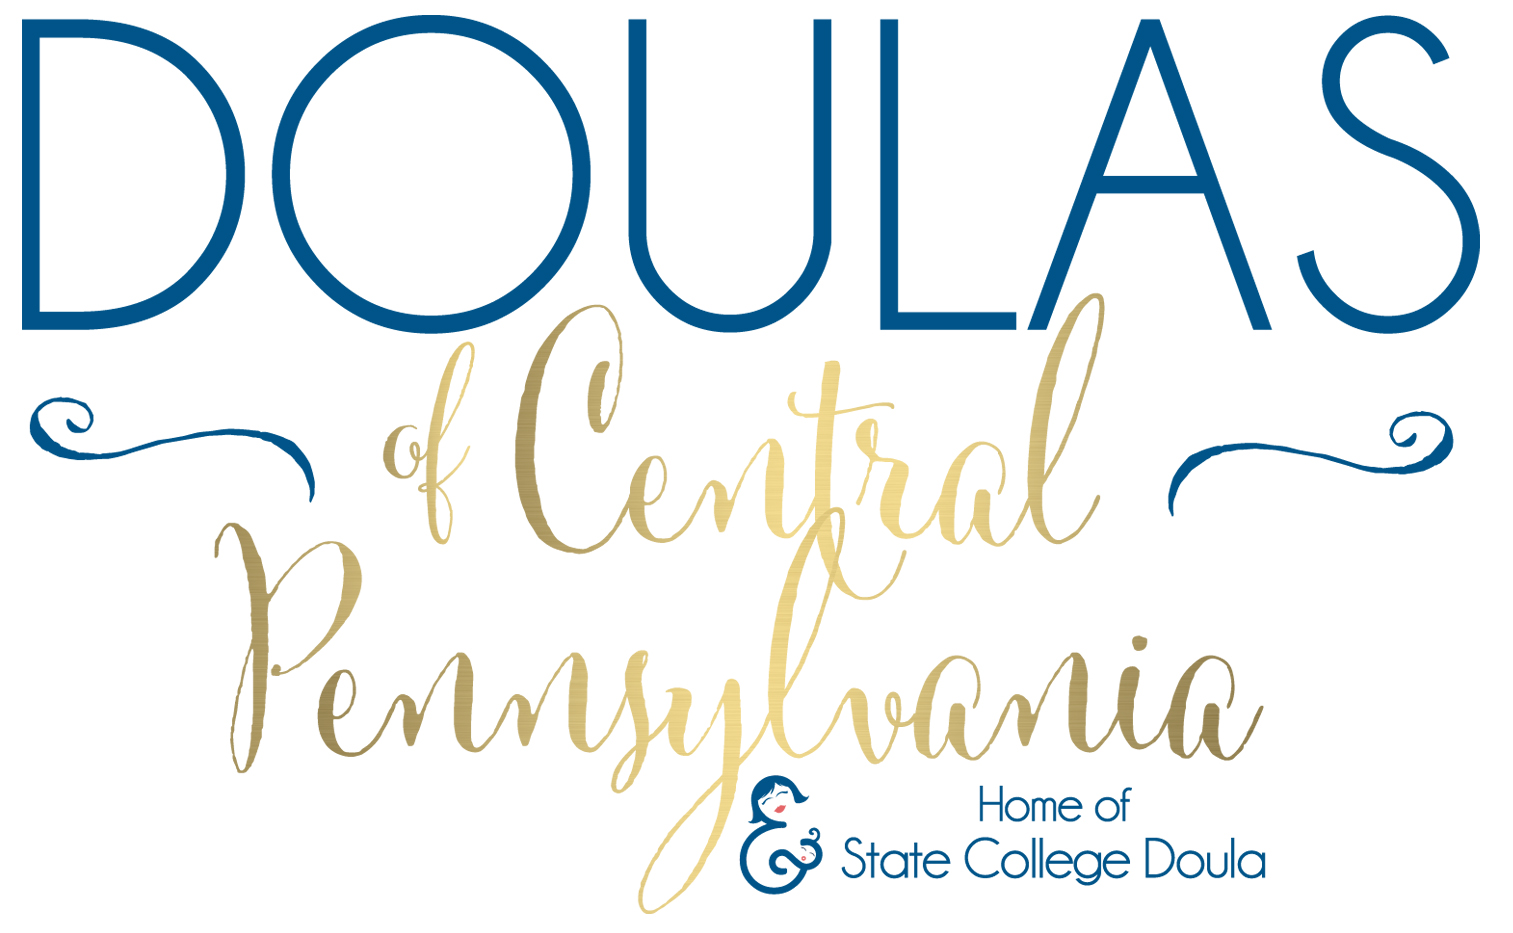 Doulas of Central Pennsylvania home of State College Doula